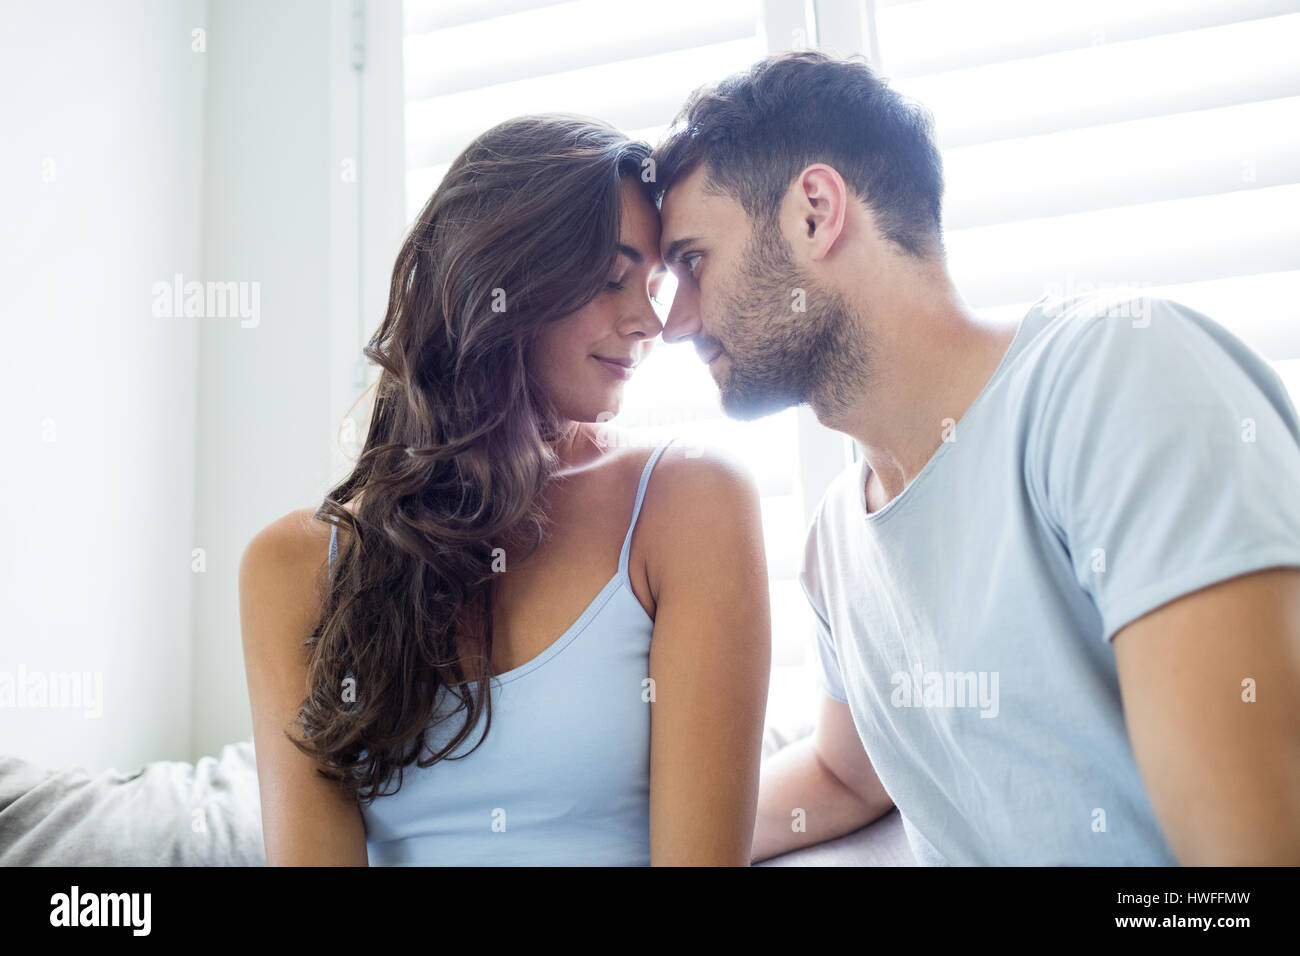 Young couple romancing in bedroom at home - Stock Image